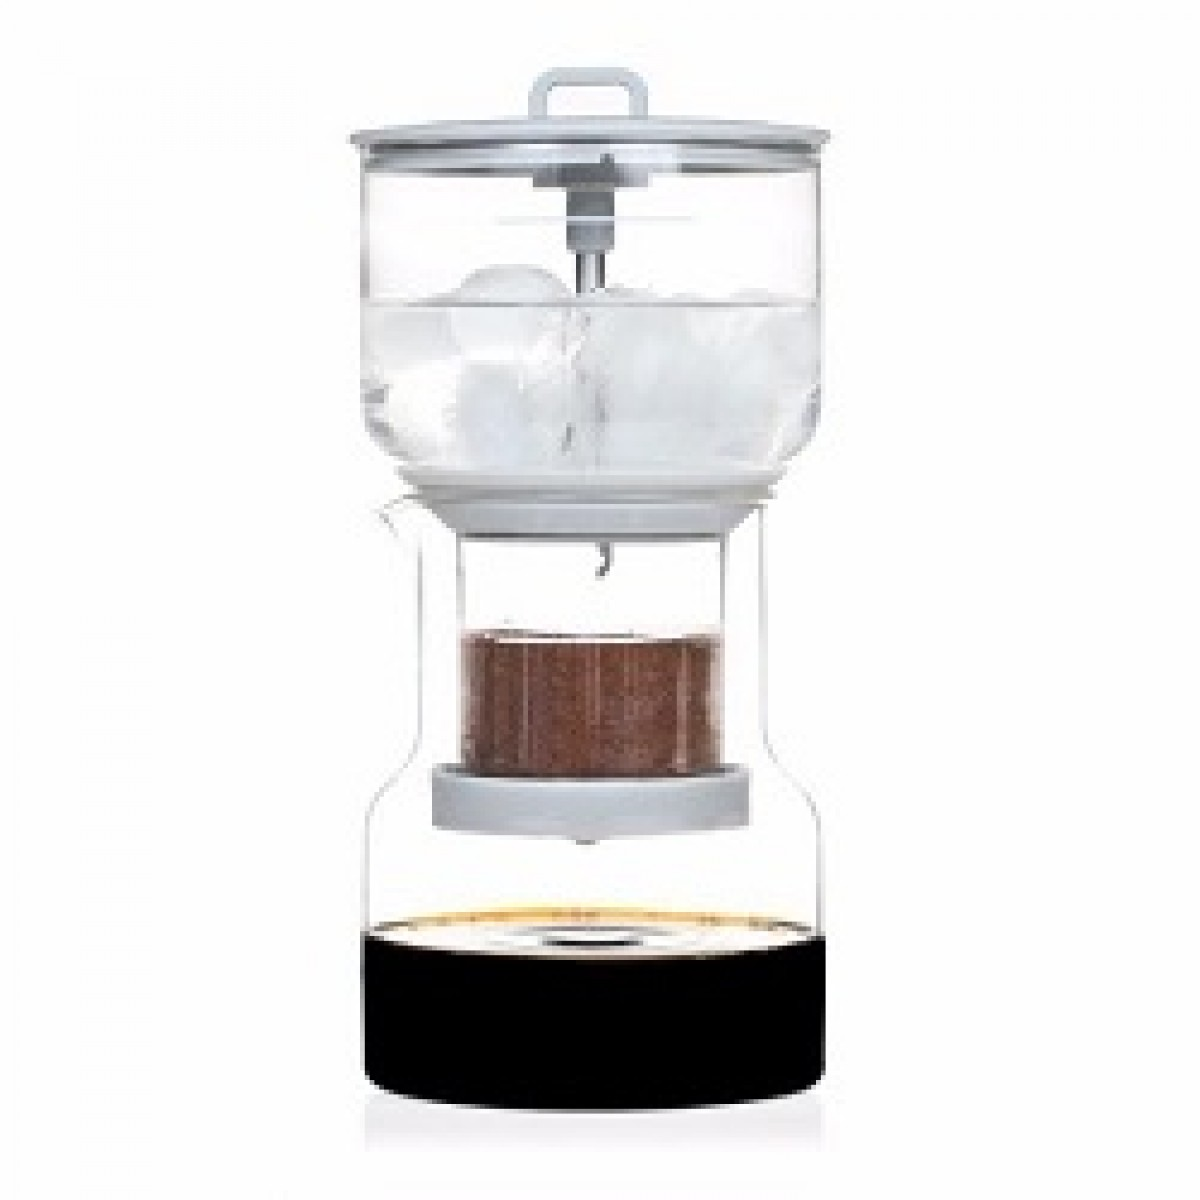 Cold Brew Equipments